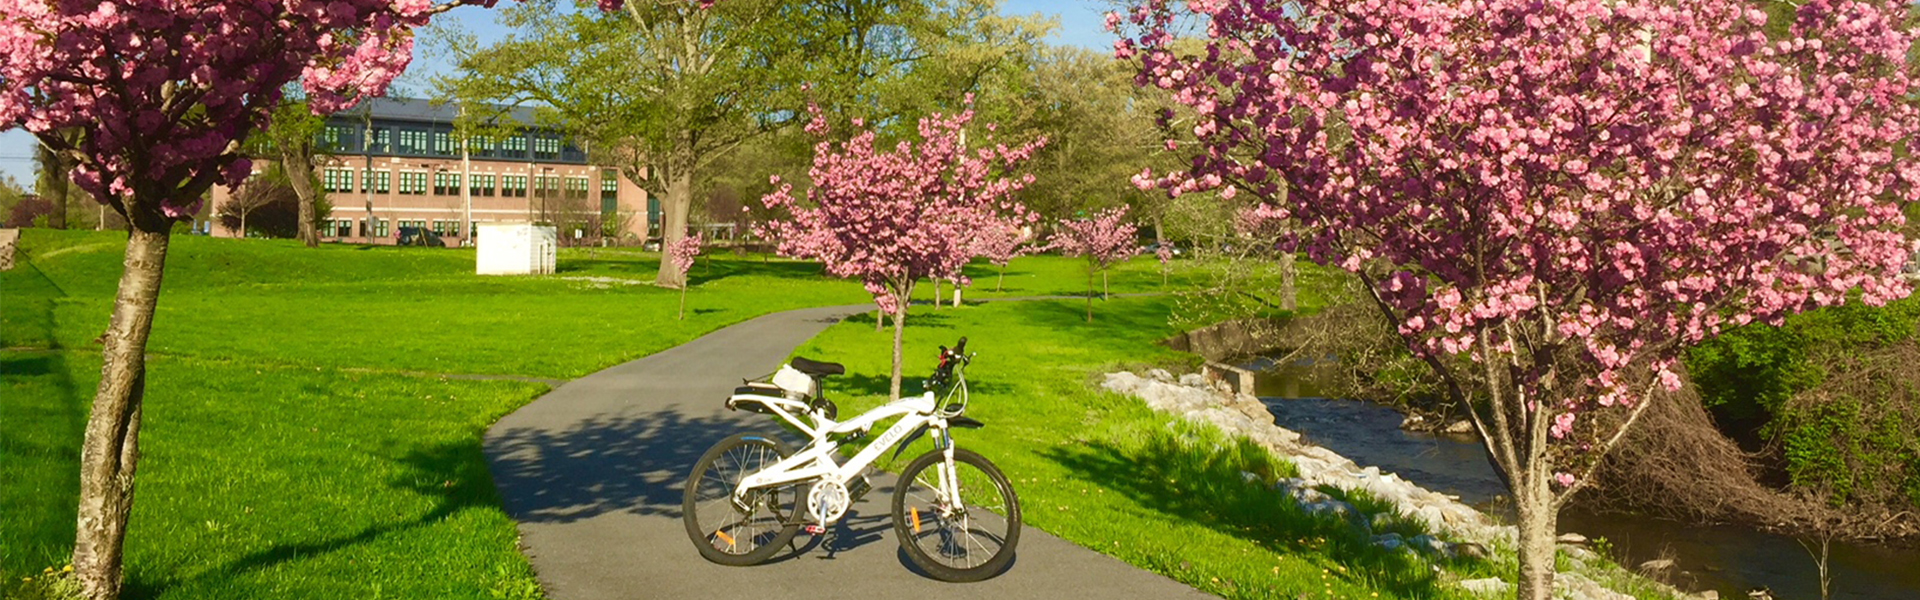 Trail with bike and blossoms near brentwood